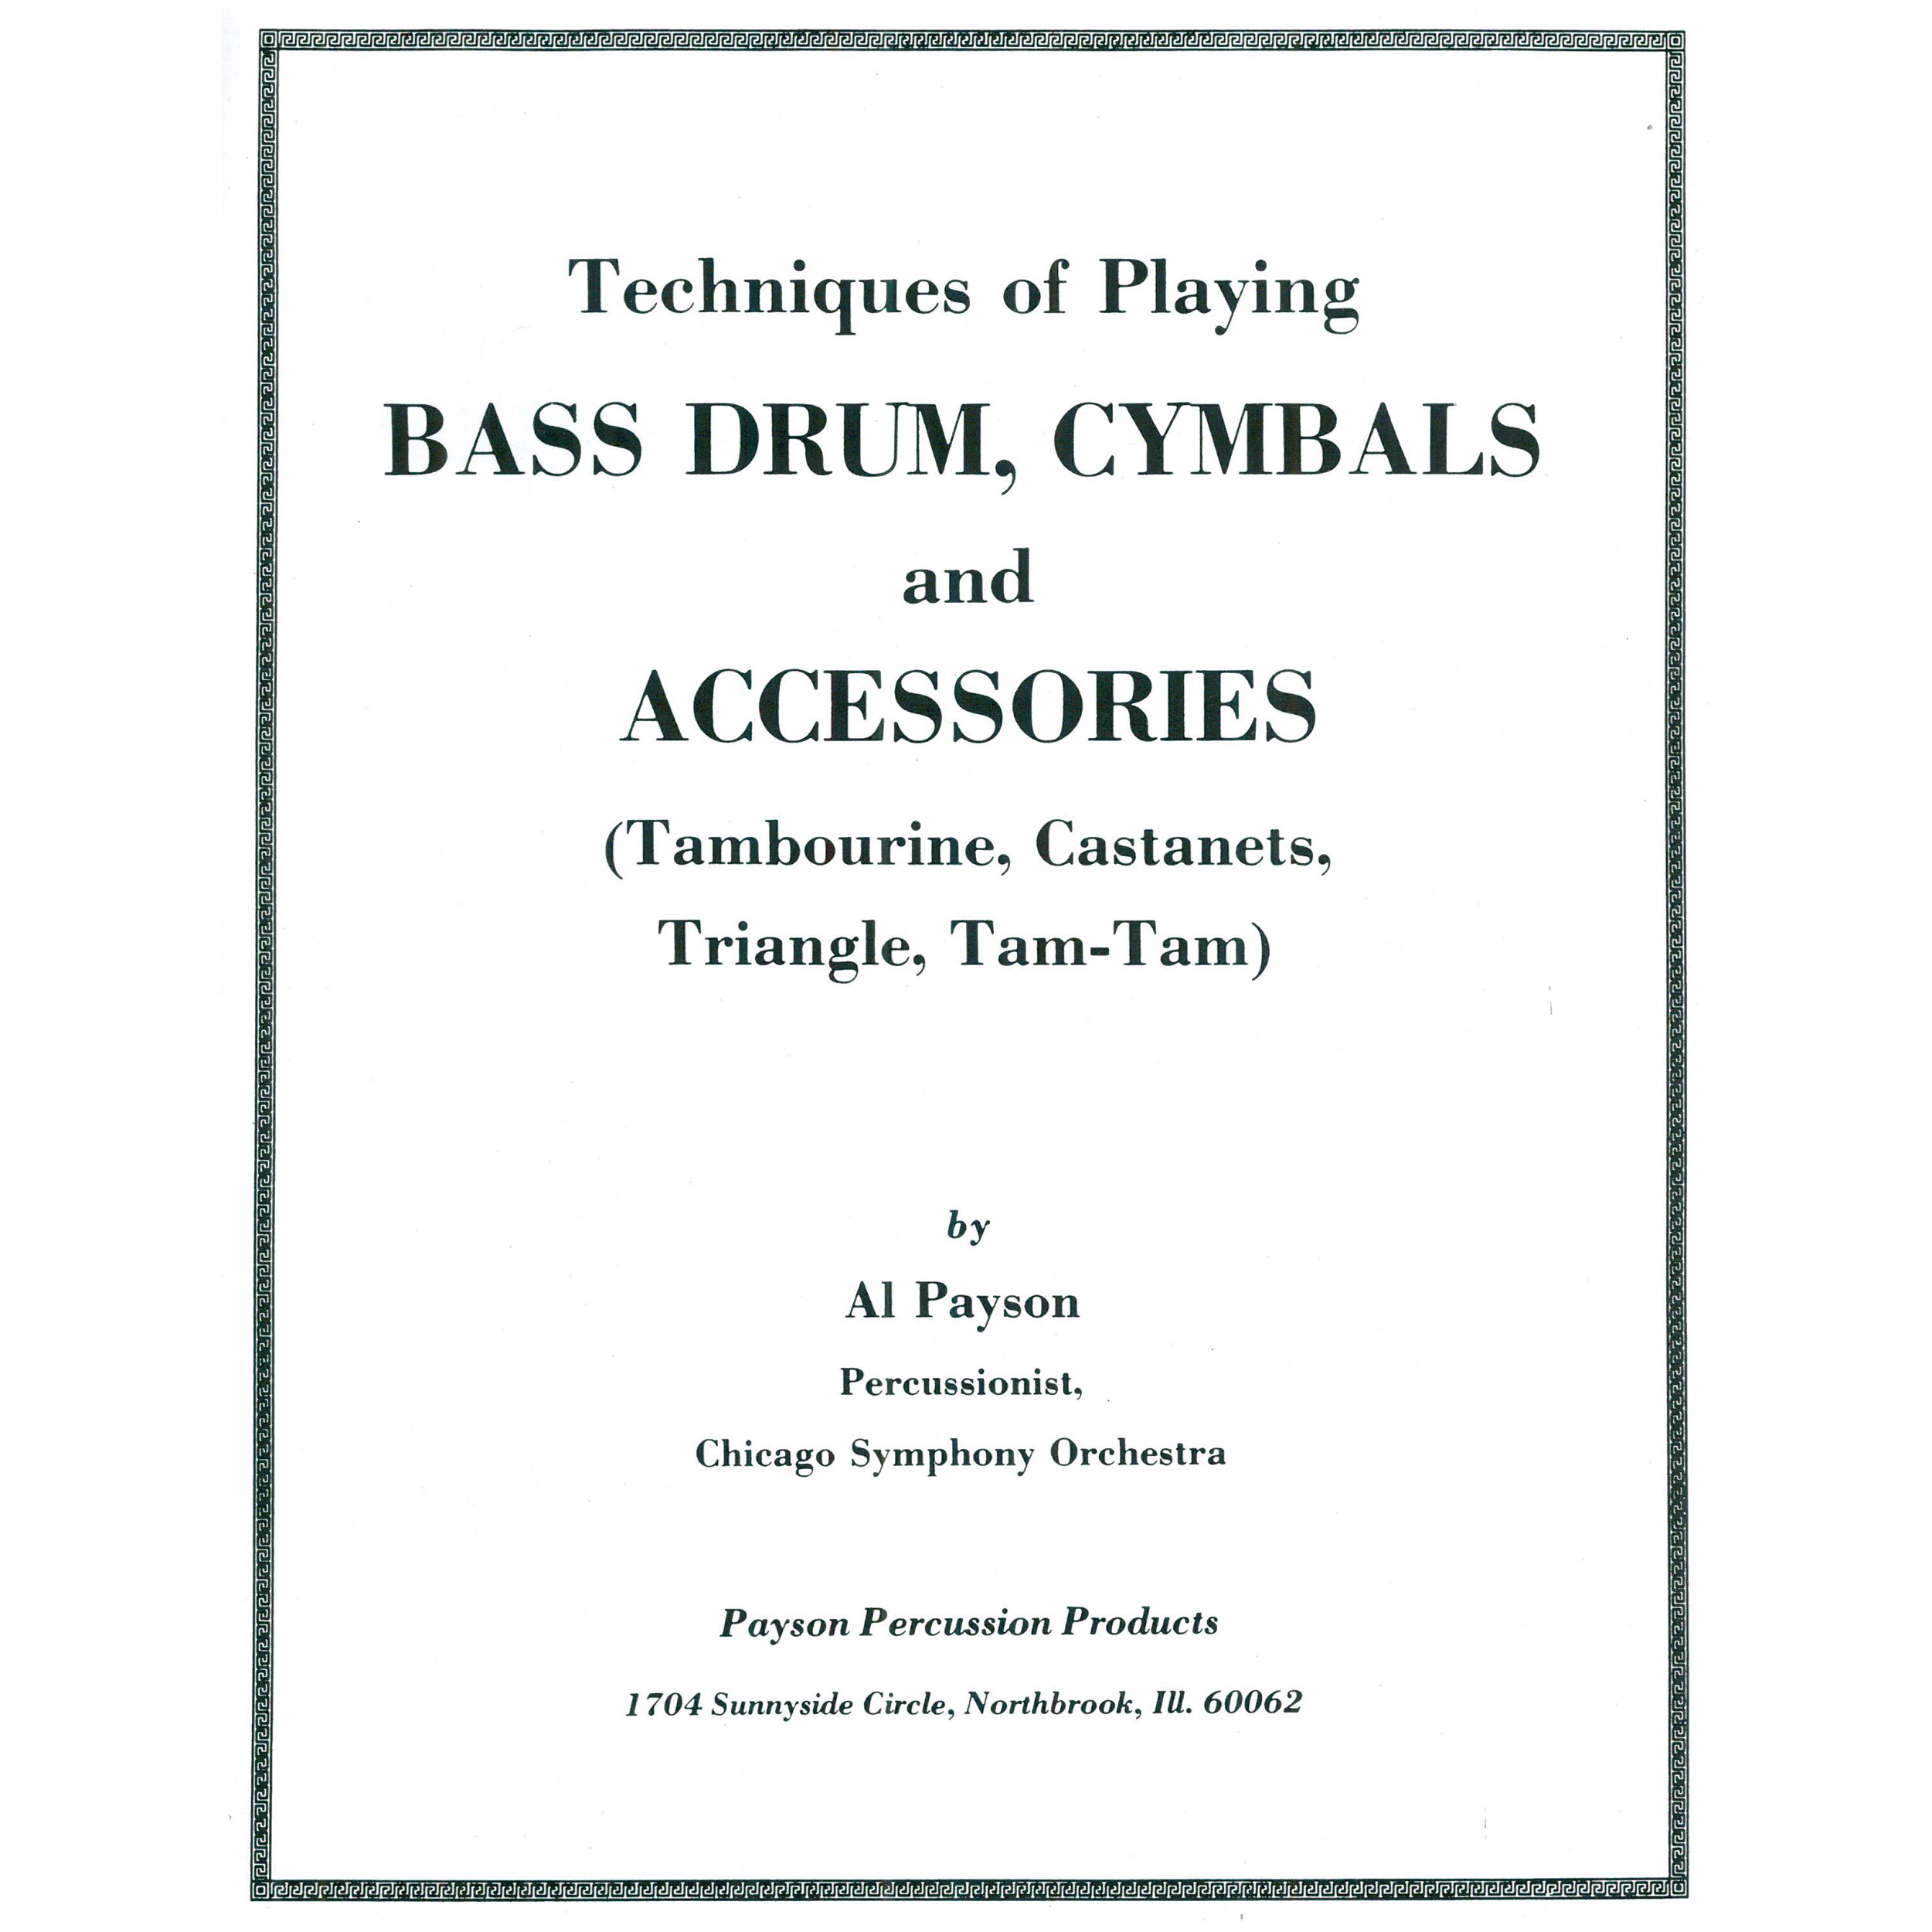 Techniques of Playing Bass Drum, Cymbals and Accessories by Al Payson